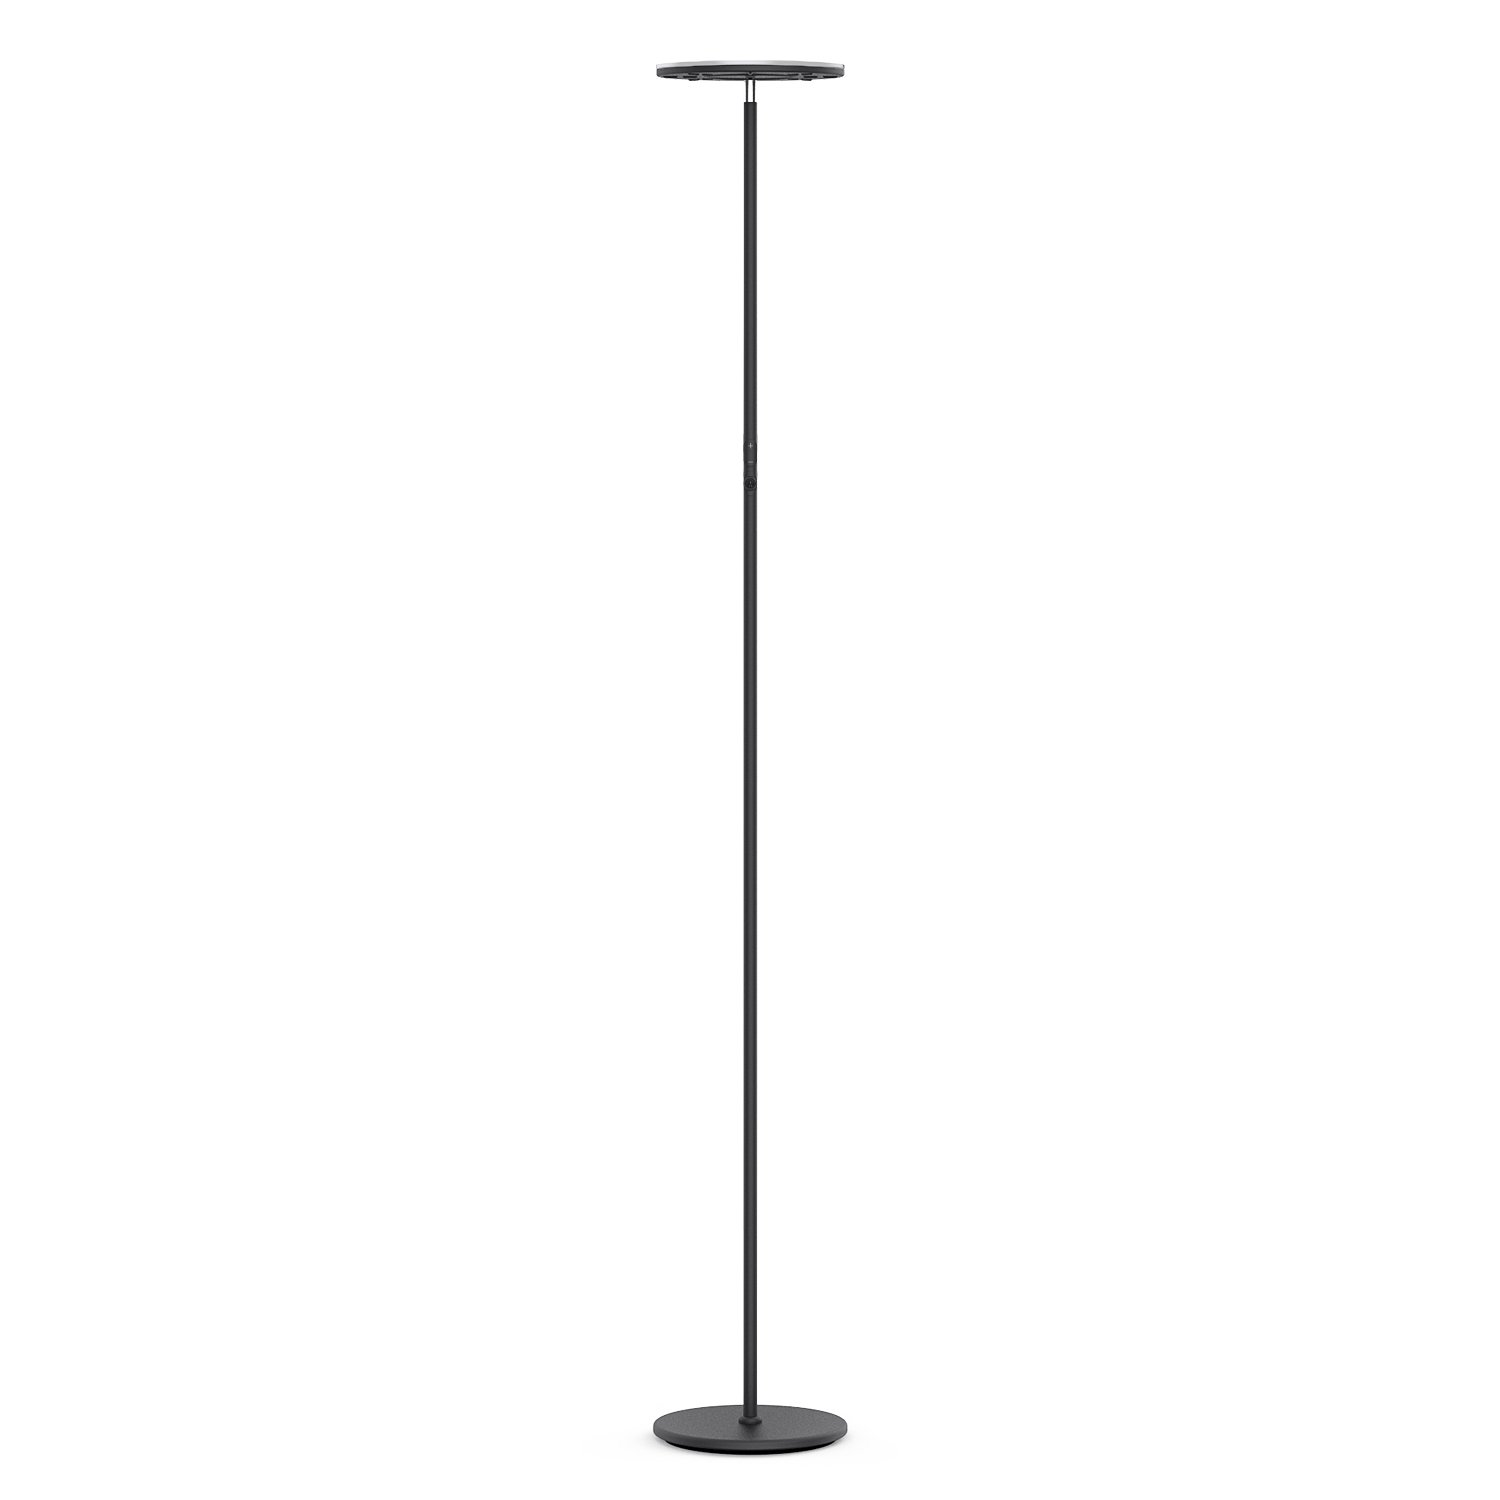 Vacnite LED Torchiere Floor Lamp, Smart-Touch-Dimming, 71-Inch,36-Watt,Super Bright Warm White for Bedroom Living Room Office - Simple Streamlining Black by VACNITE (Image #1)